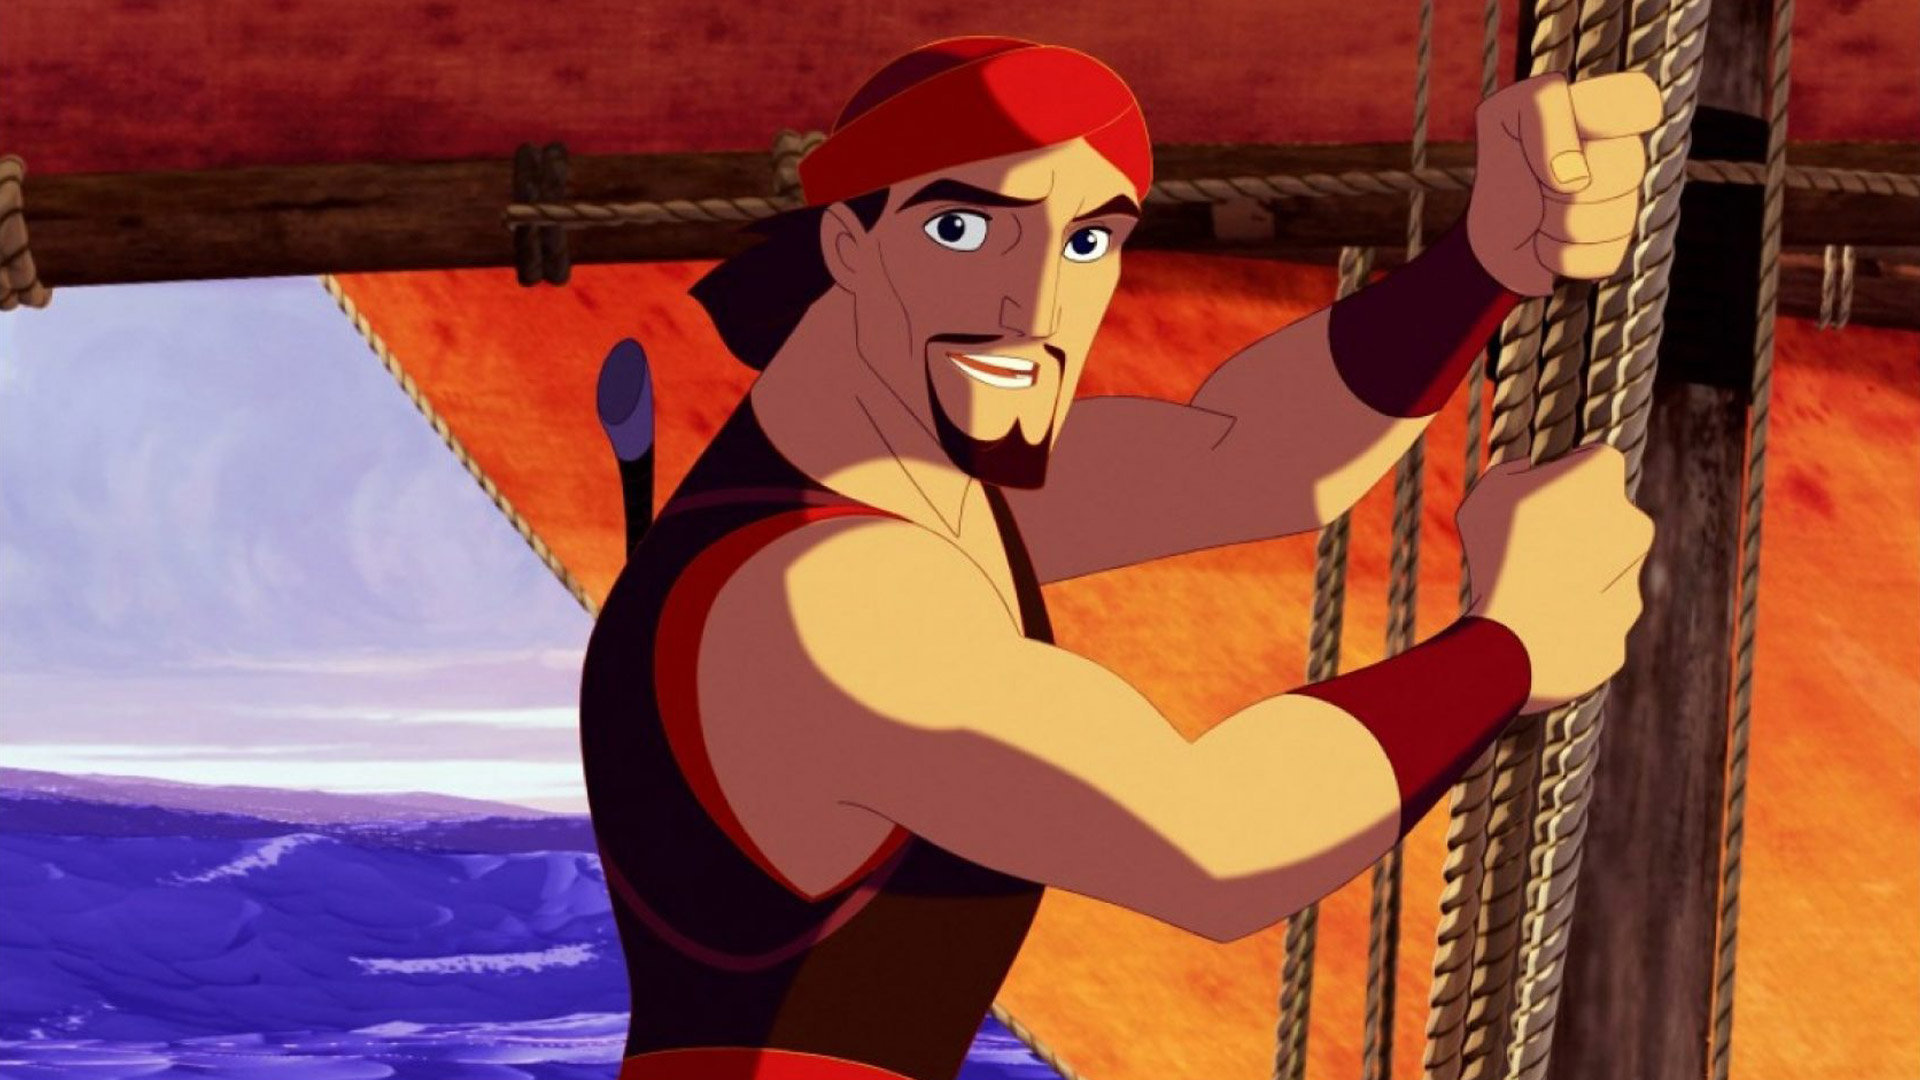 Sinbad the sailor (voiced by Brad Pitt) in Sinbad: Legend of the Seven Seas (2003)